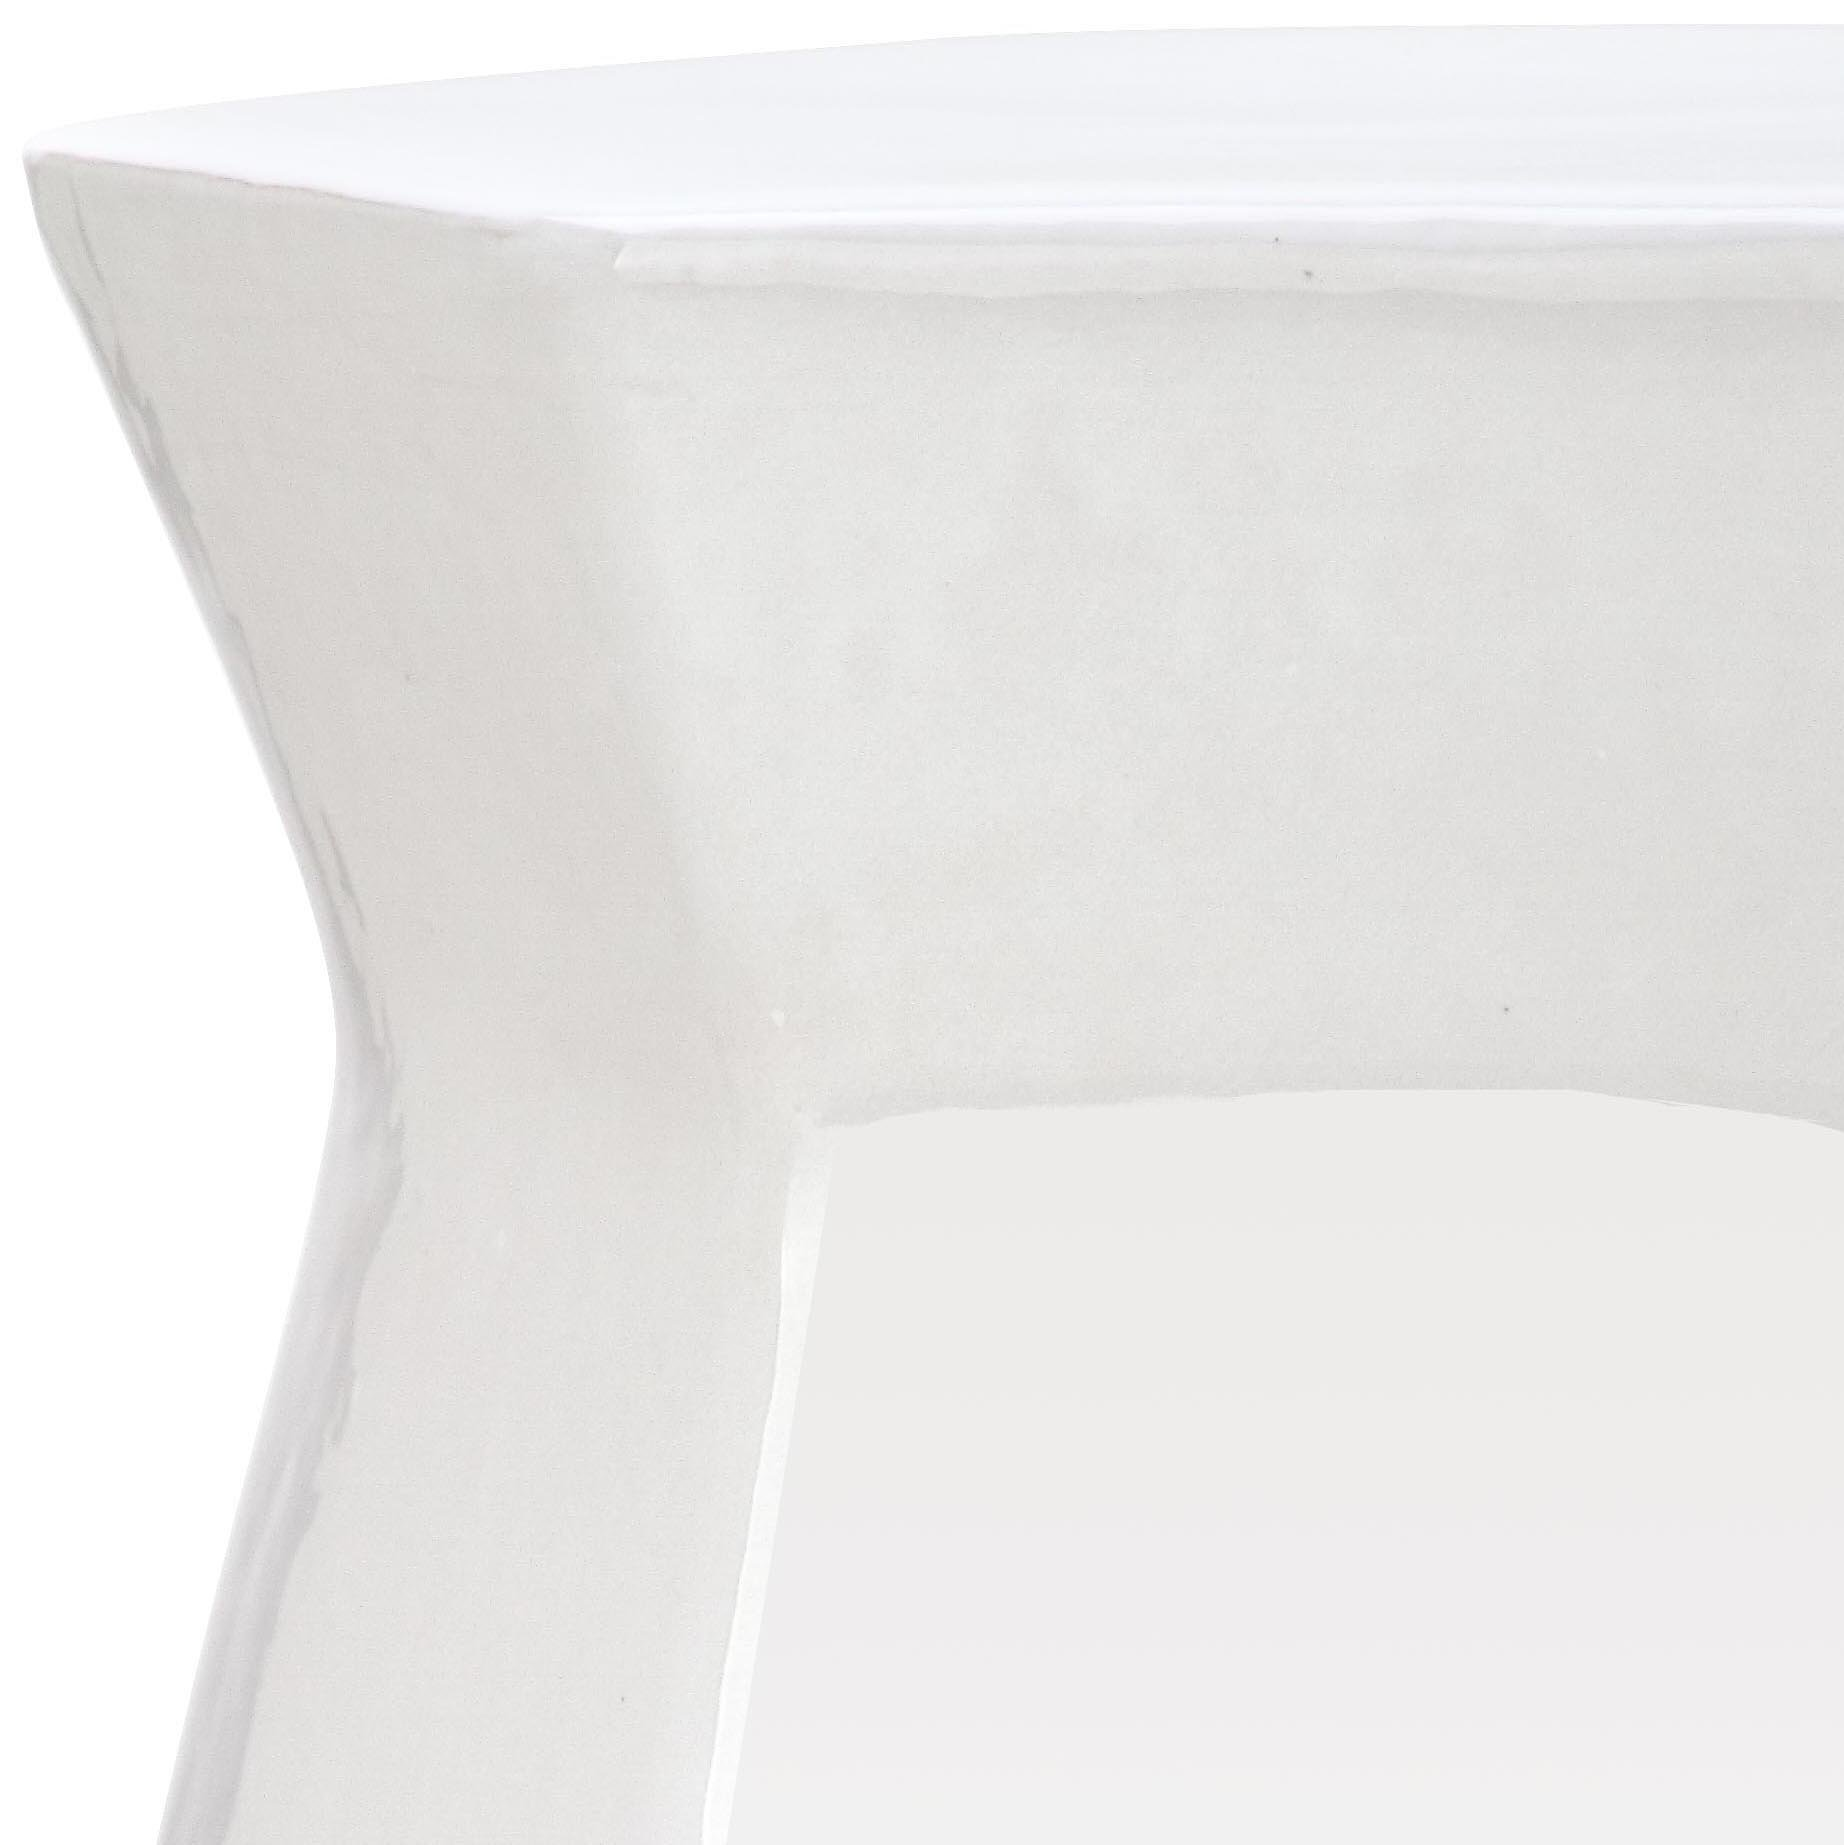 Safavieh Castle Gardens Collection Modern Hexagon White Glazed Ceramic Garden Stool by Safavieh (Image #2)